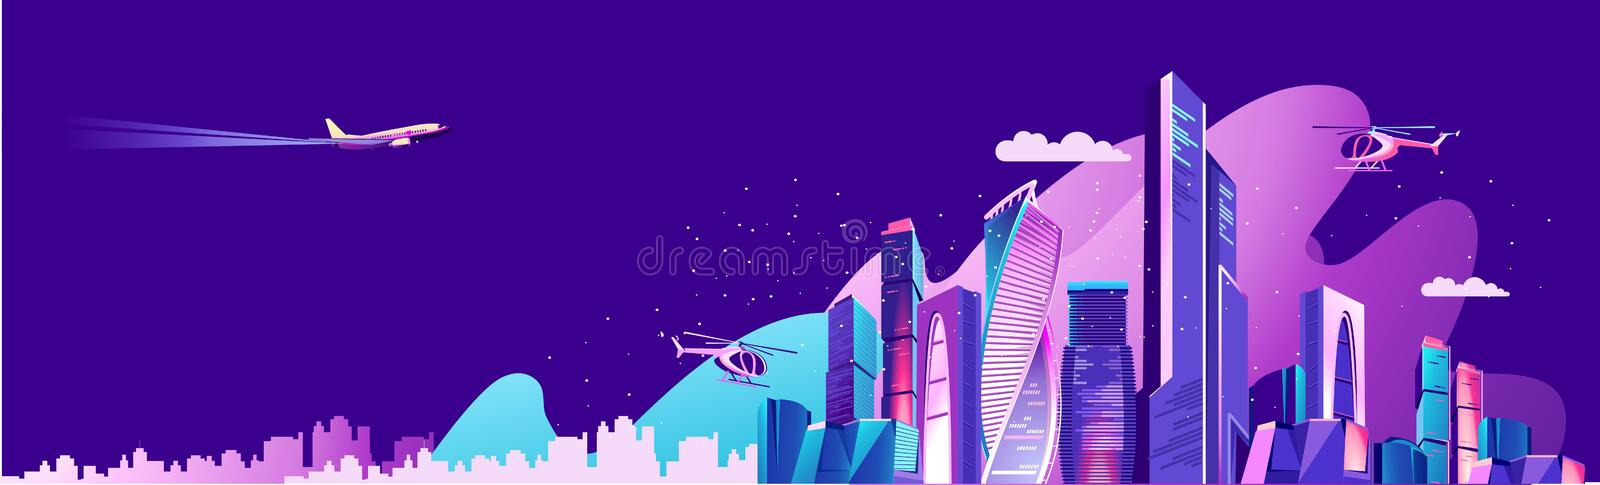 City landscape concept. Landing page for a website about city life, social communication, concept, cityscape of a business center Vector horizontal illustration royalty free illustration